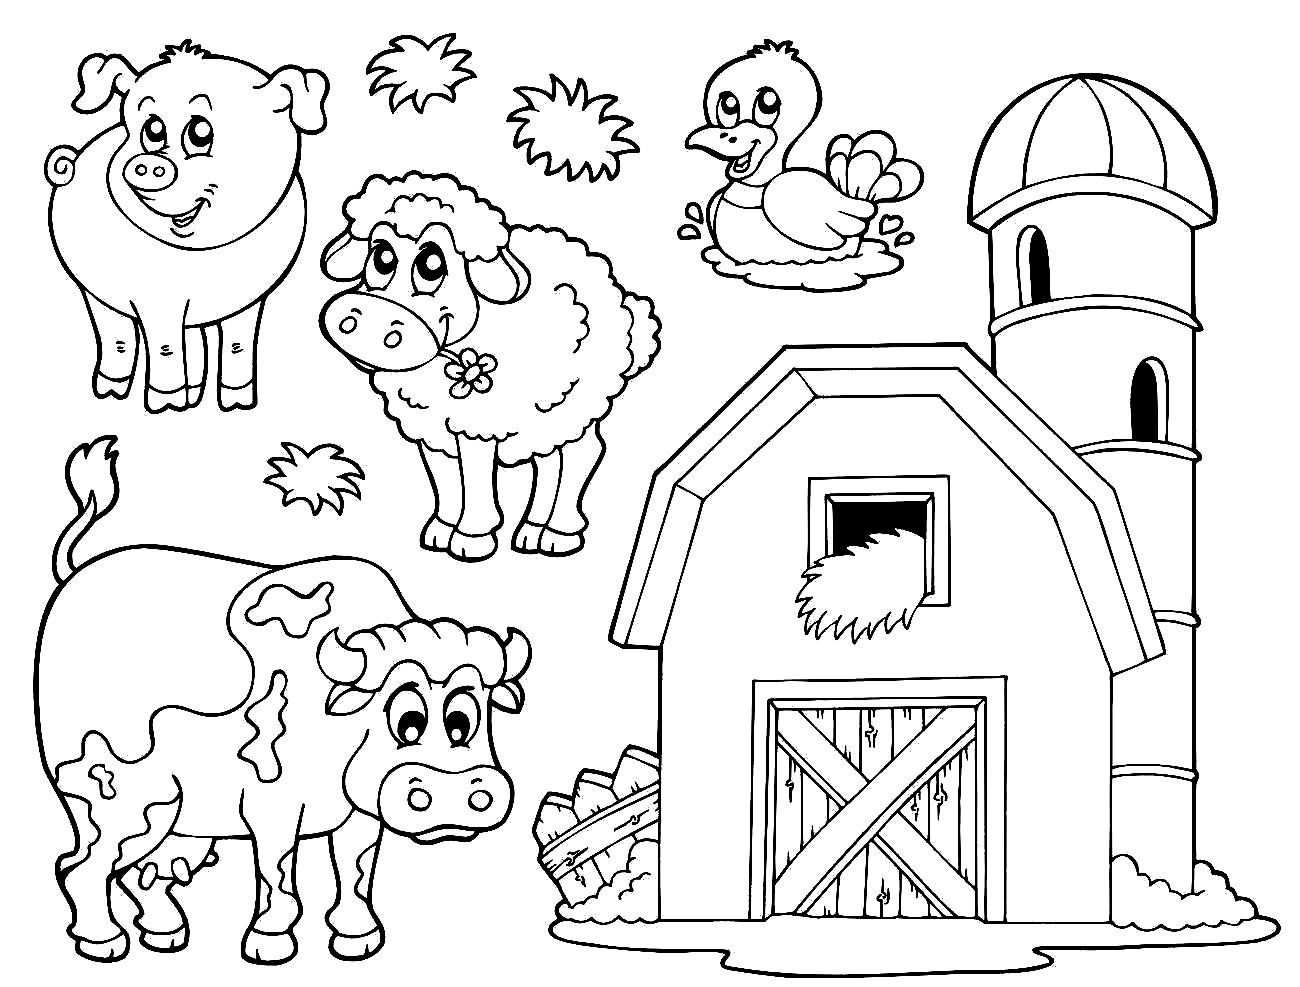 Printable Coloring Pages Of Farm Animals Printables And Charts Throughout Printable Colo Farm Animal Coloring Pages Farm Coloring Pages Animal Coloring Pages